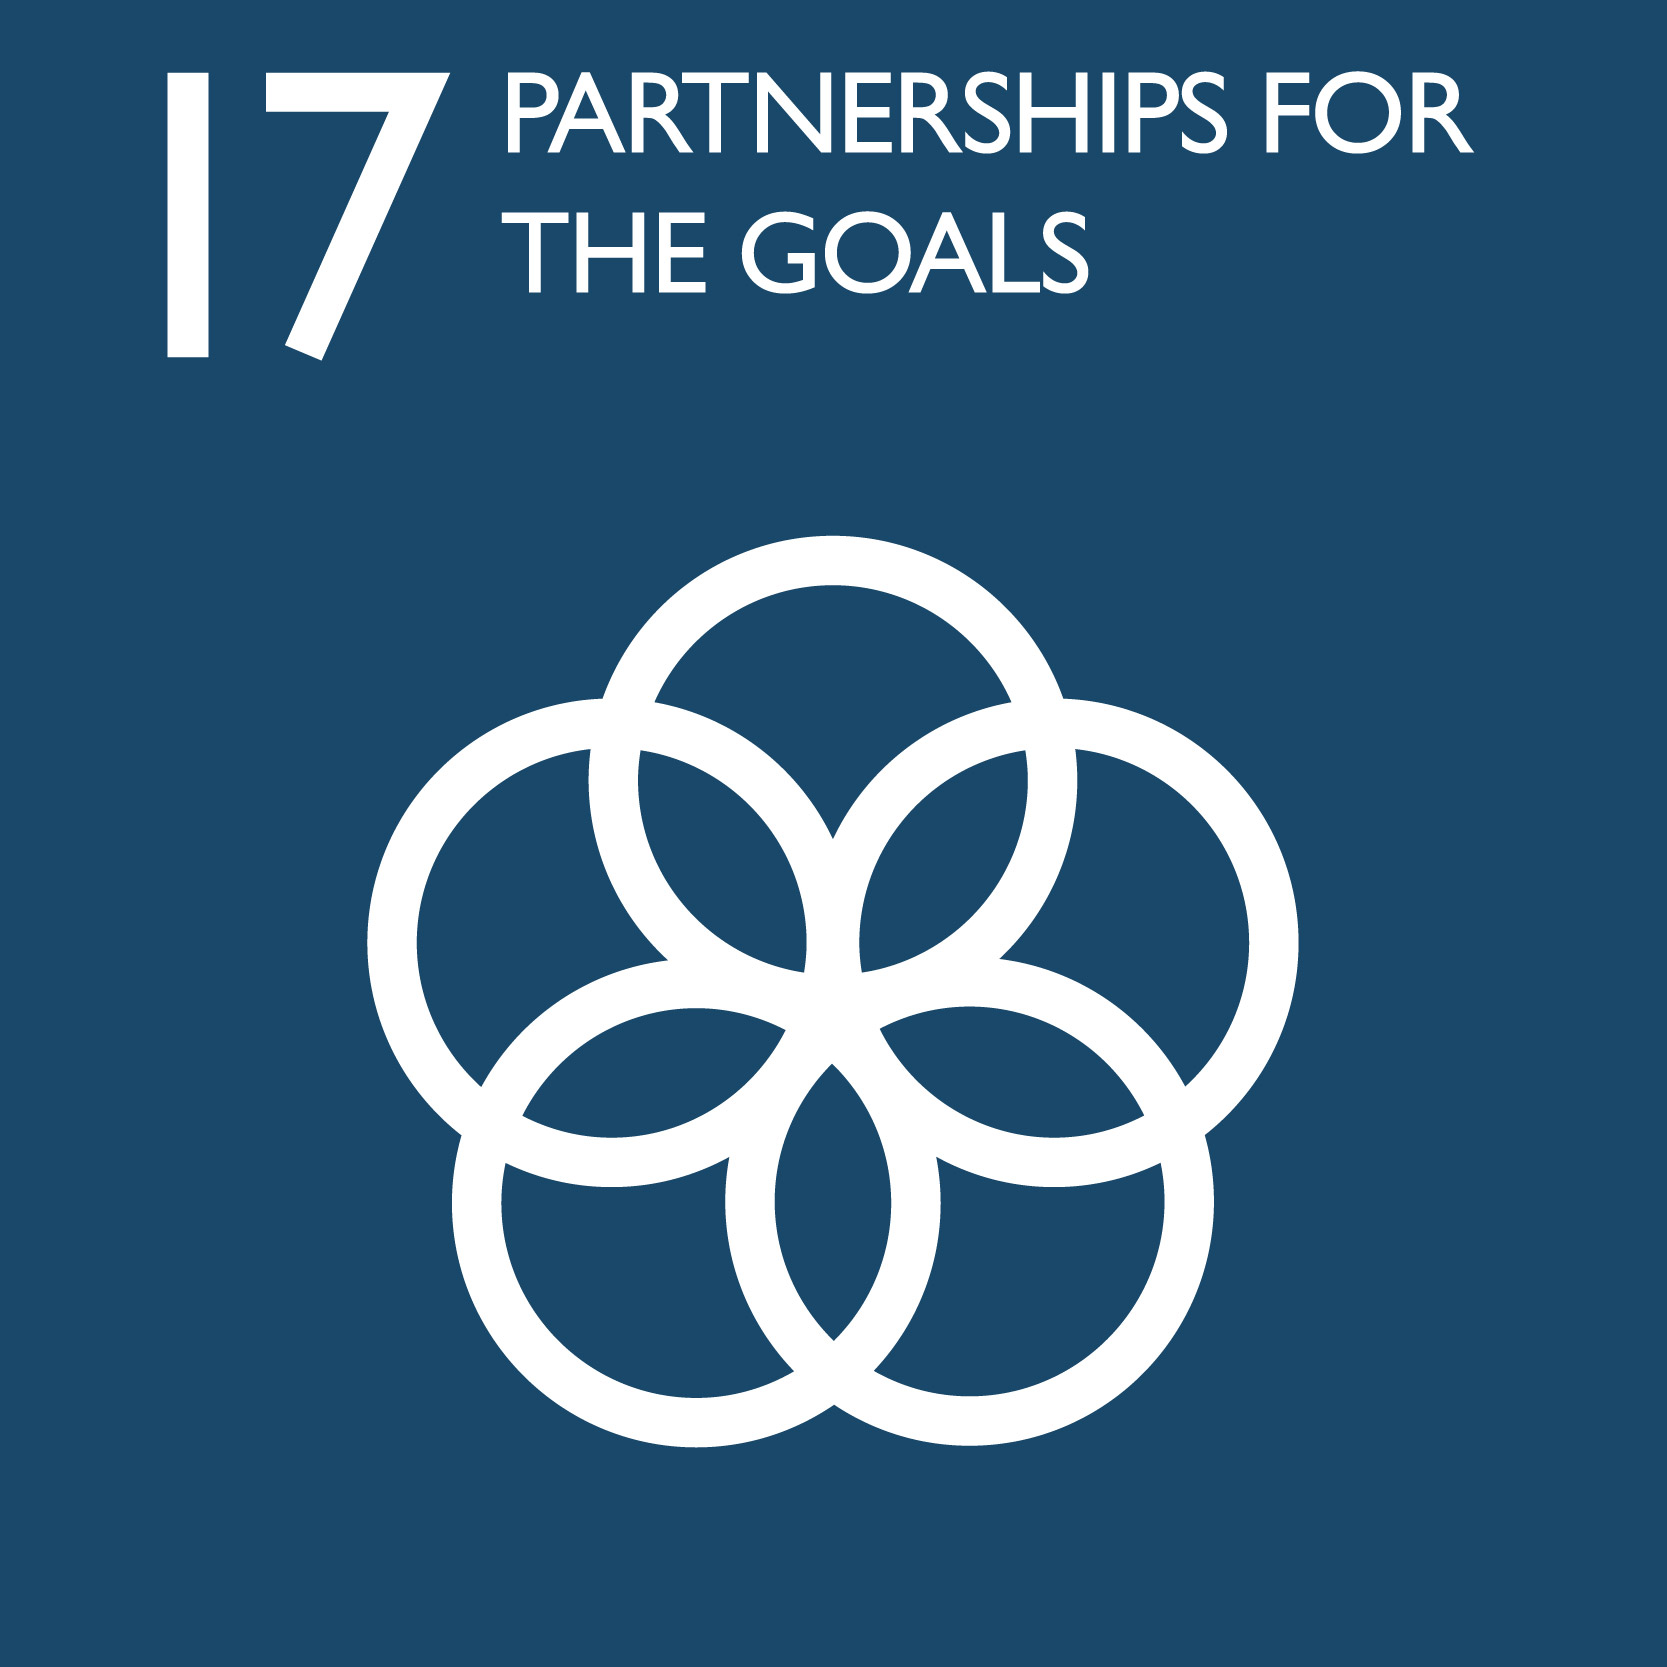 The Common Purpose - Global Goals 17